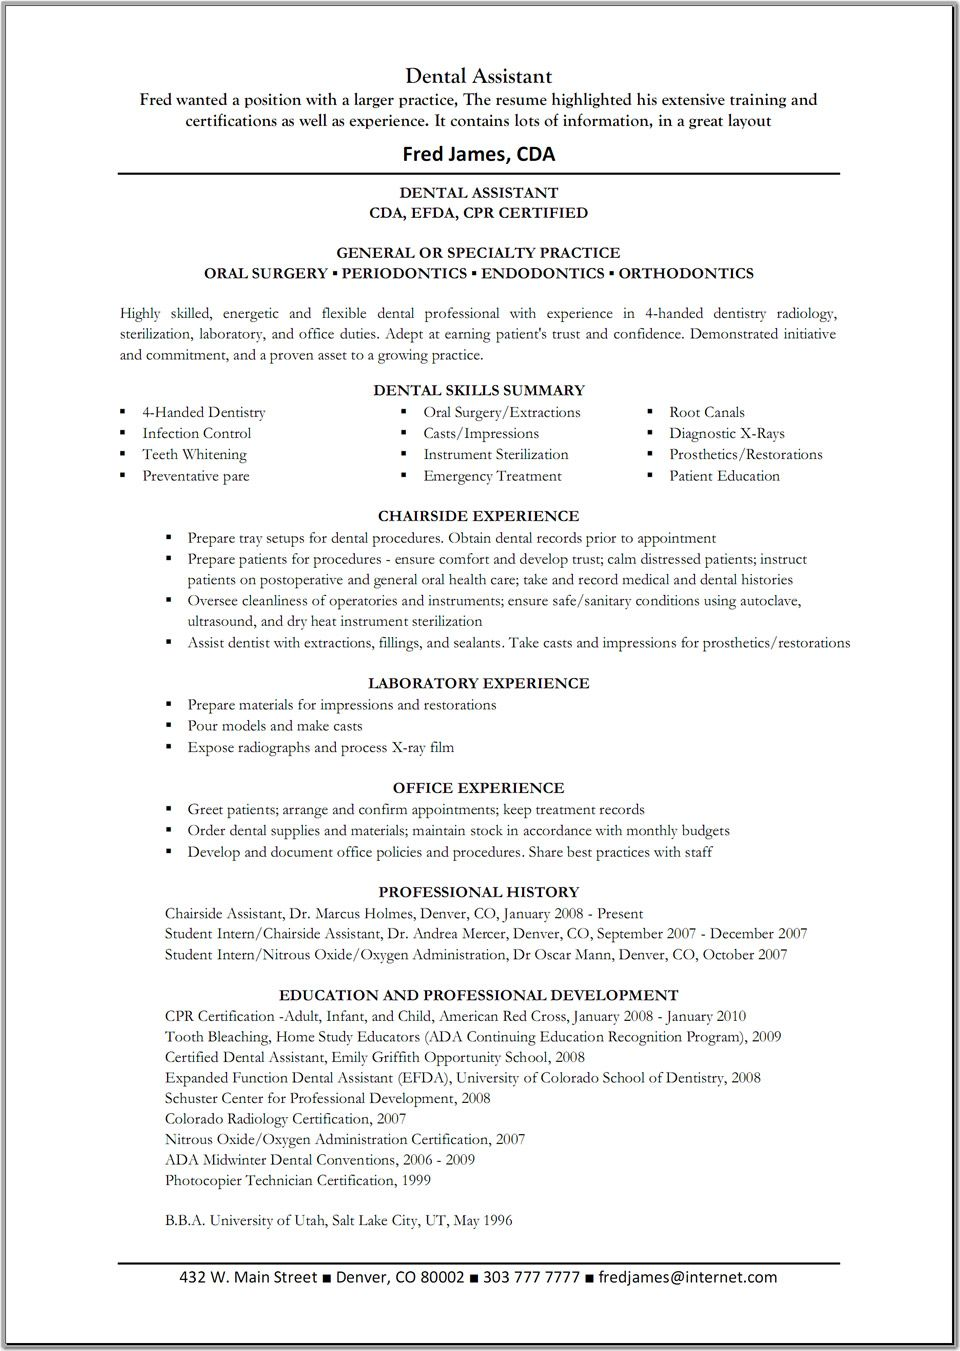 Legal Assistant Resume Fair Dental Assistant Resume Template  Great Resume Templates  Dental